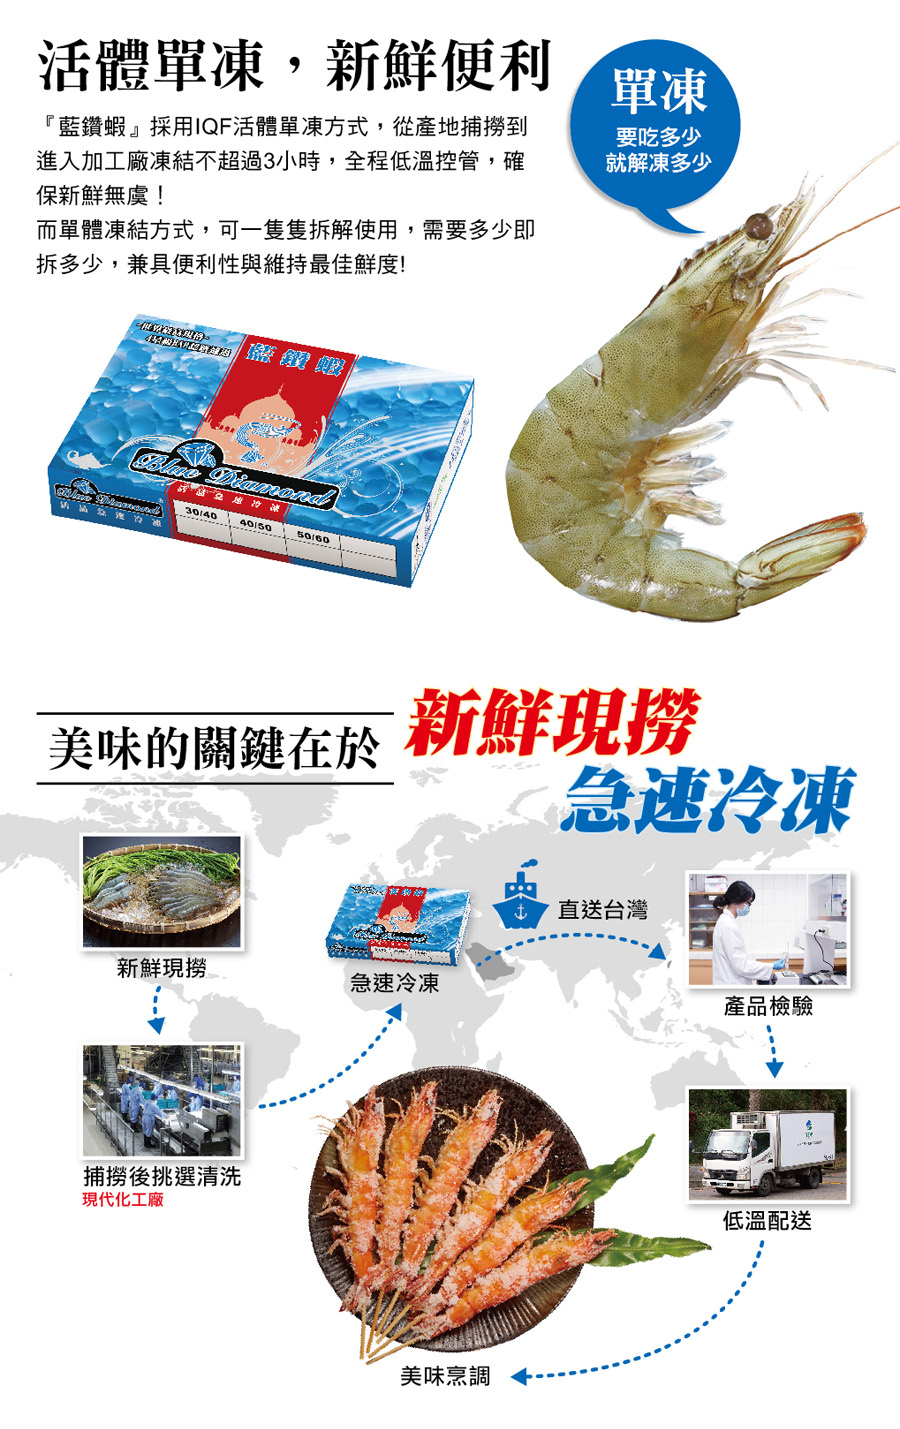 proimages/products/2-Crustacean/2-2/產品介紹頁-3_01.jpg